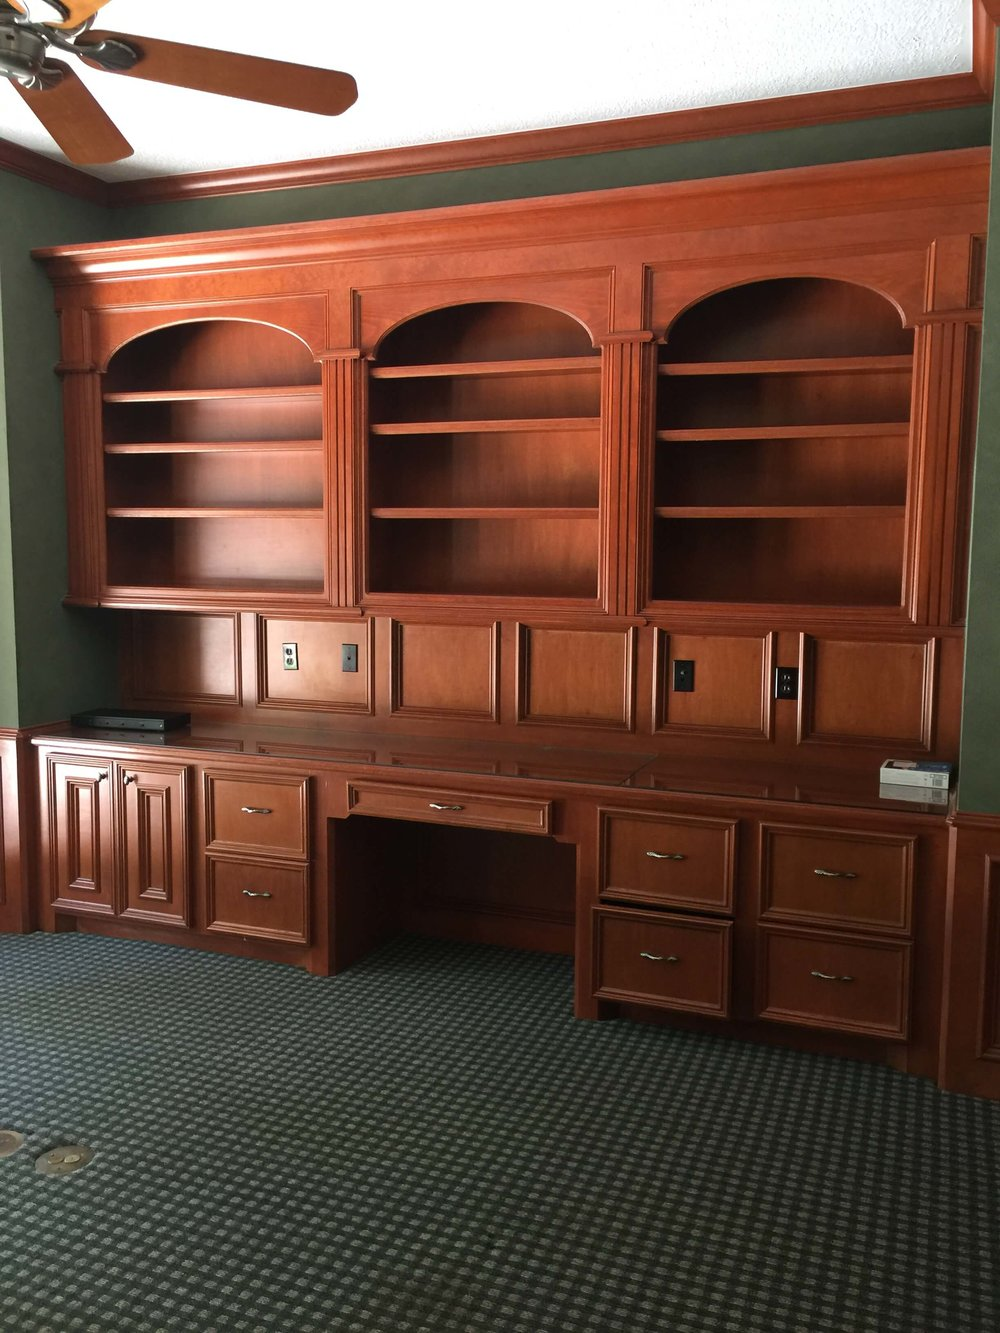 BEFORE - Home office with orange tone wood built-in